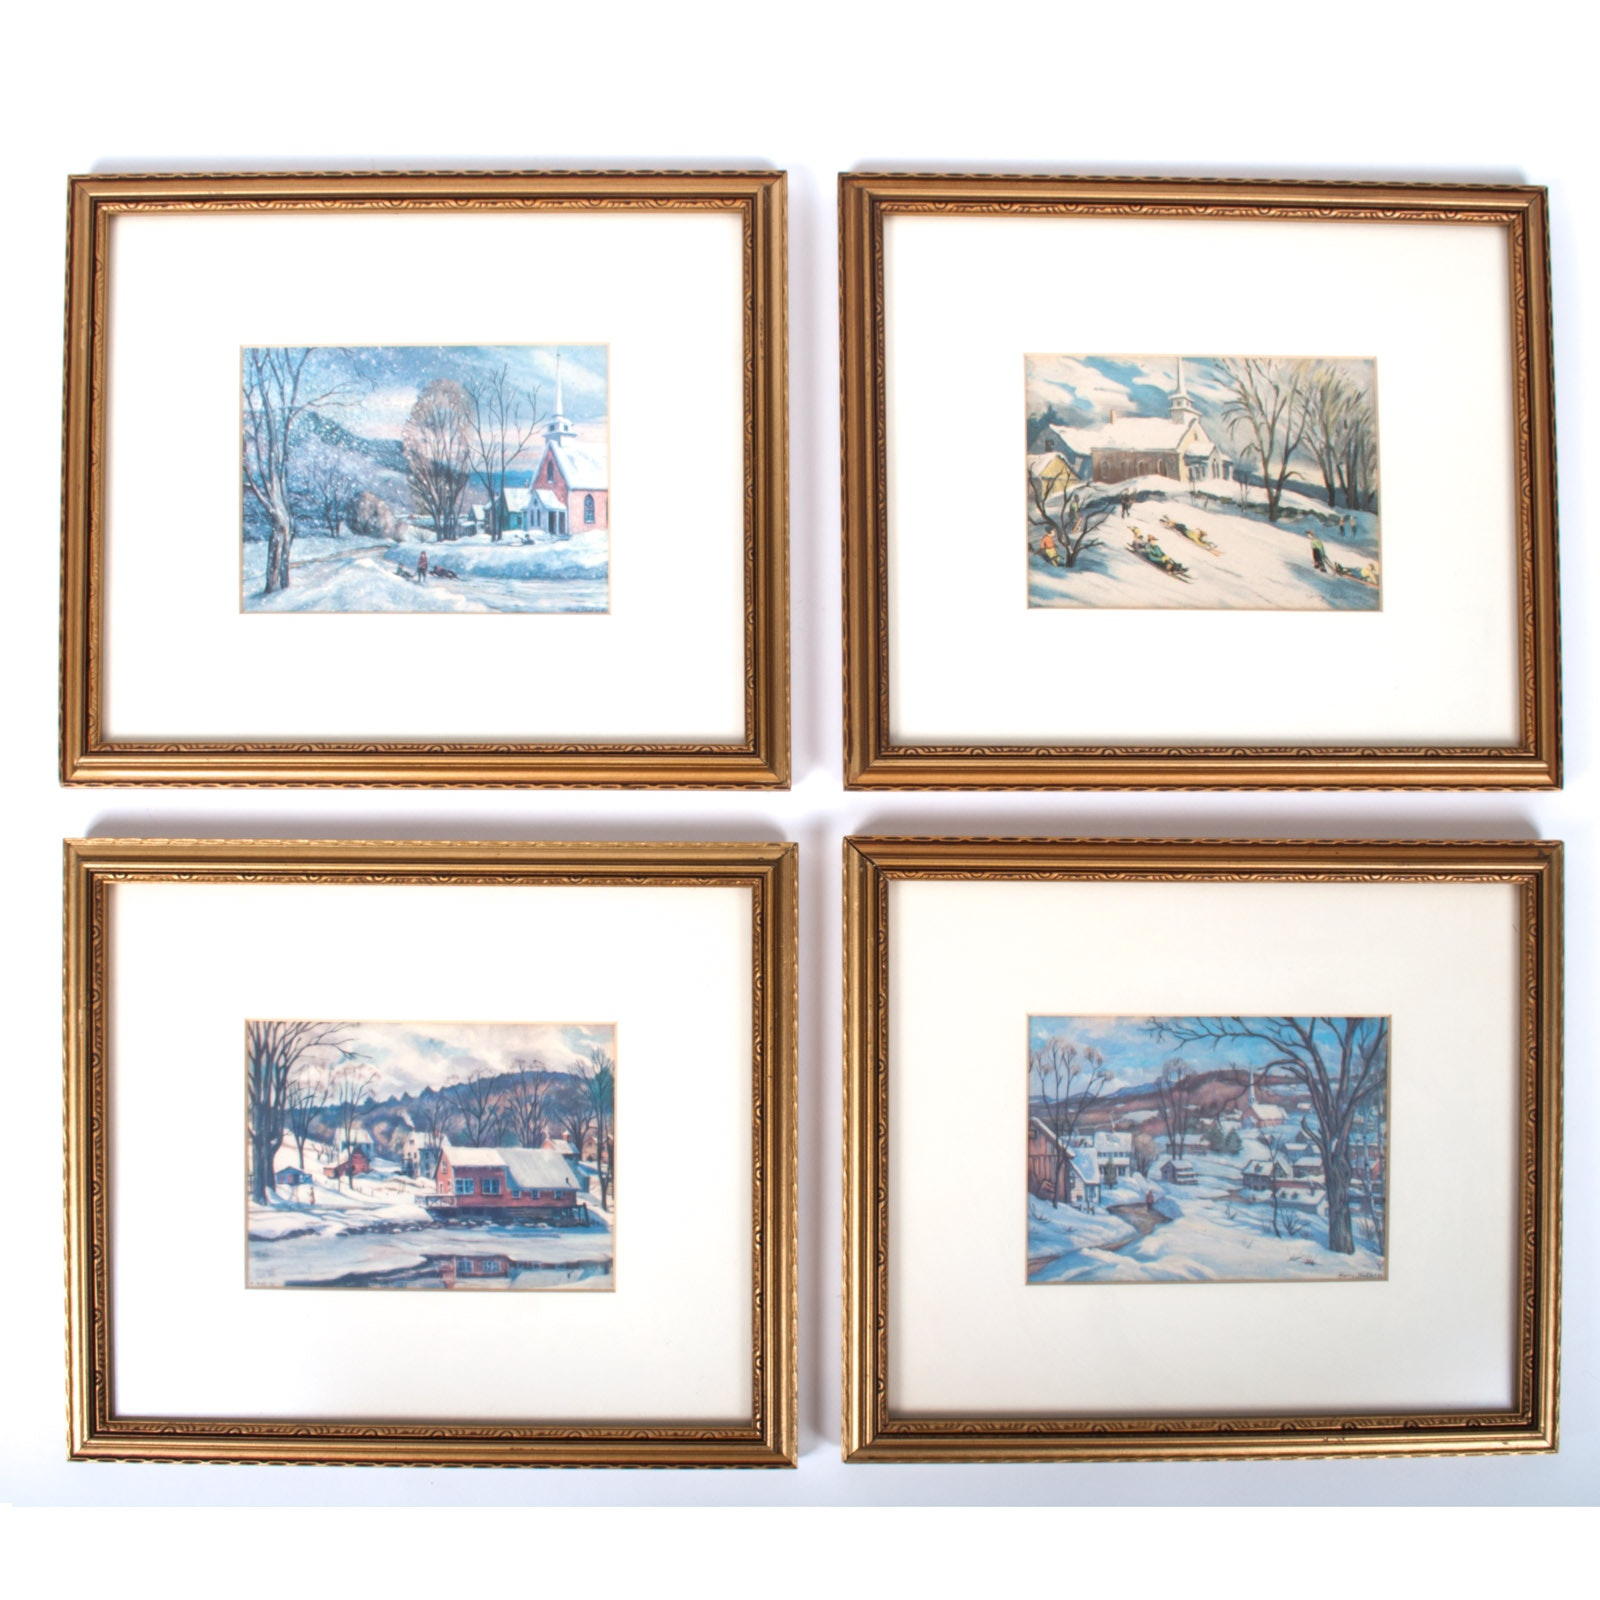 Set of Harry Shokler Serigraphs on Paper of Winter Scenes